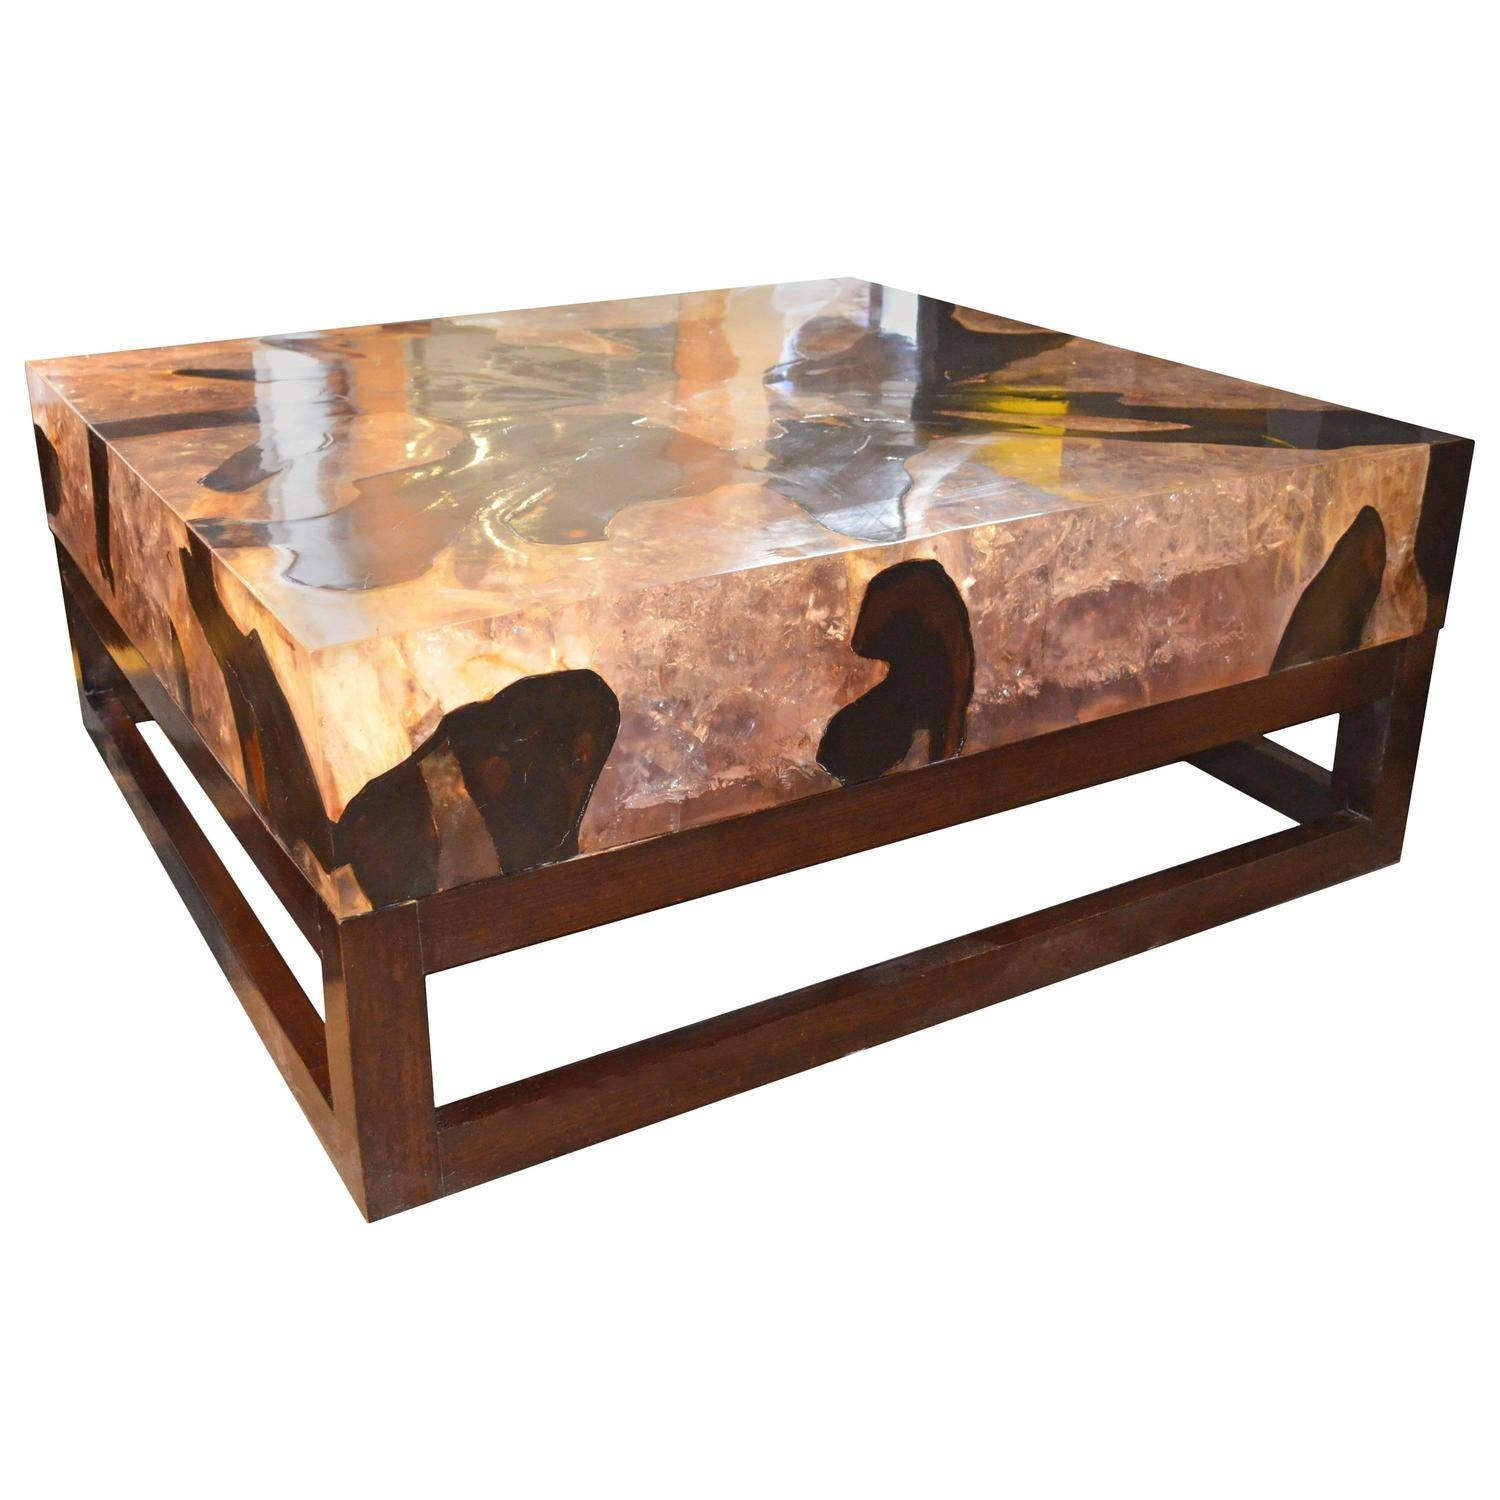 Table. Resin Coffee Table - Home Interior Design within Reclaimed Wood And Glass Coffee Tables (Image 29 of 30)